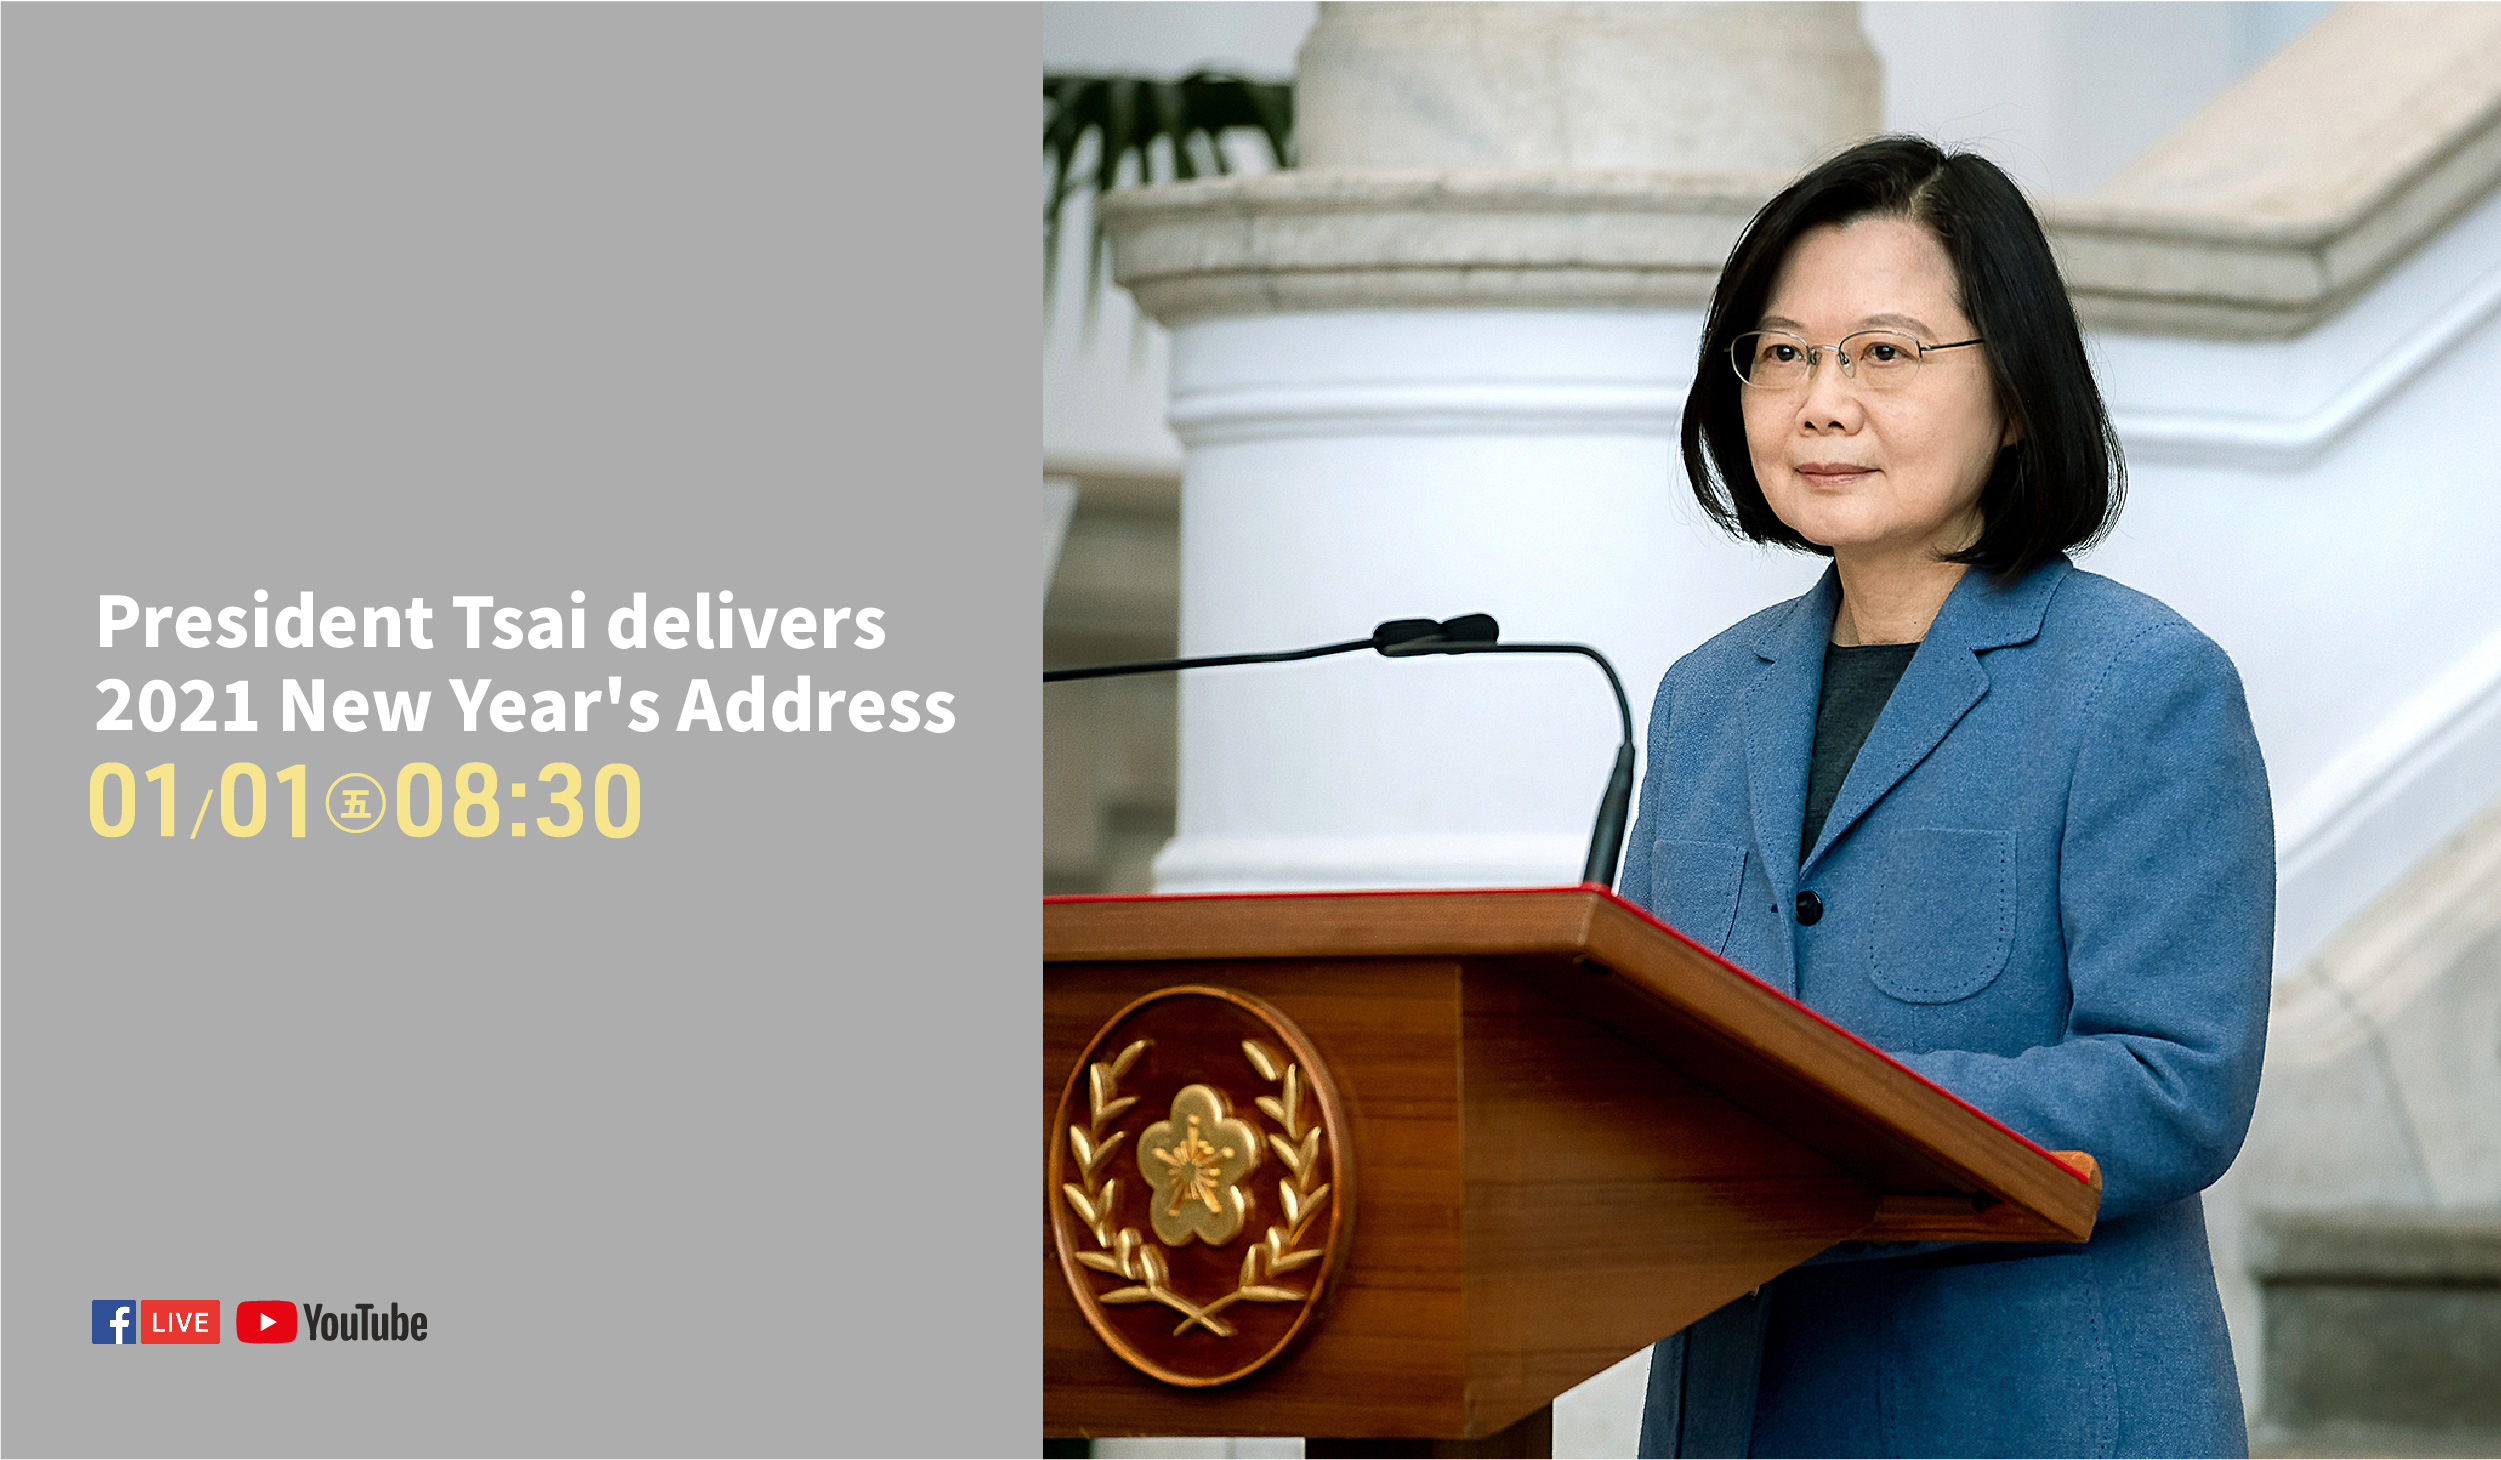 President Tsai delivers 2021 New Year's Address